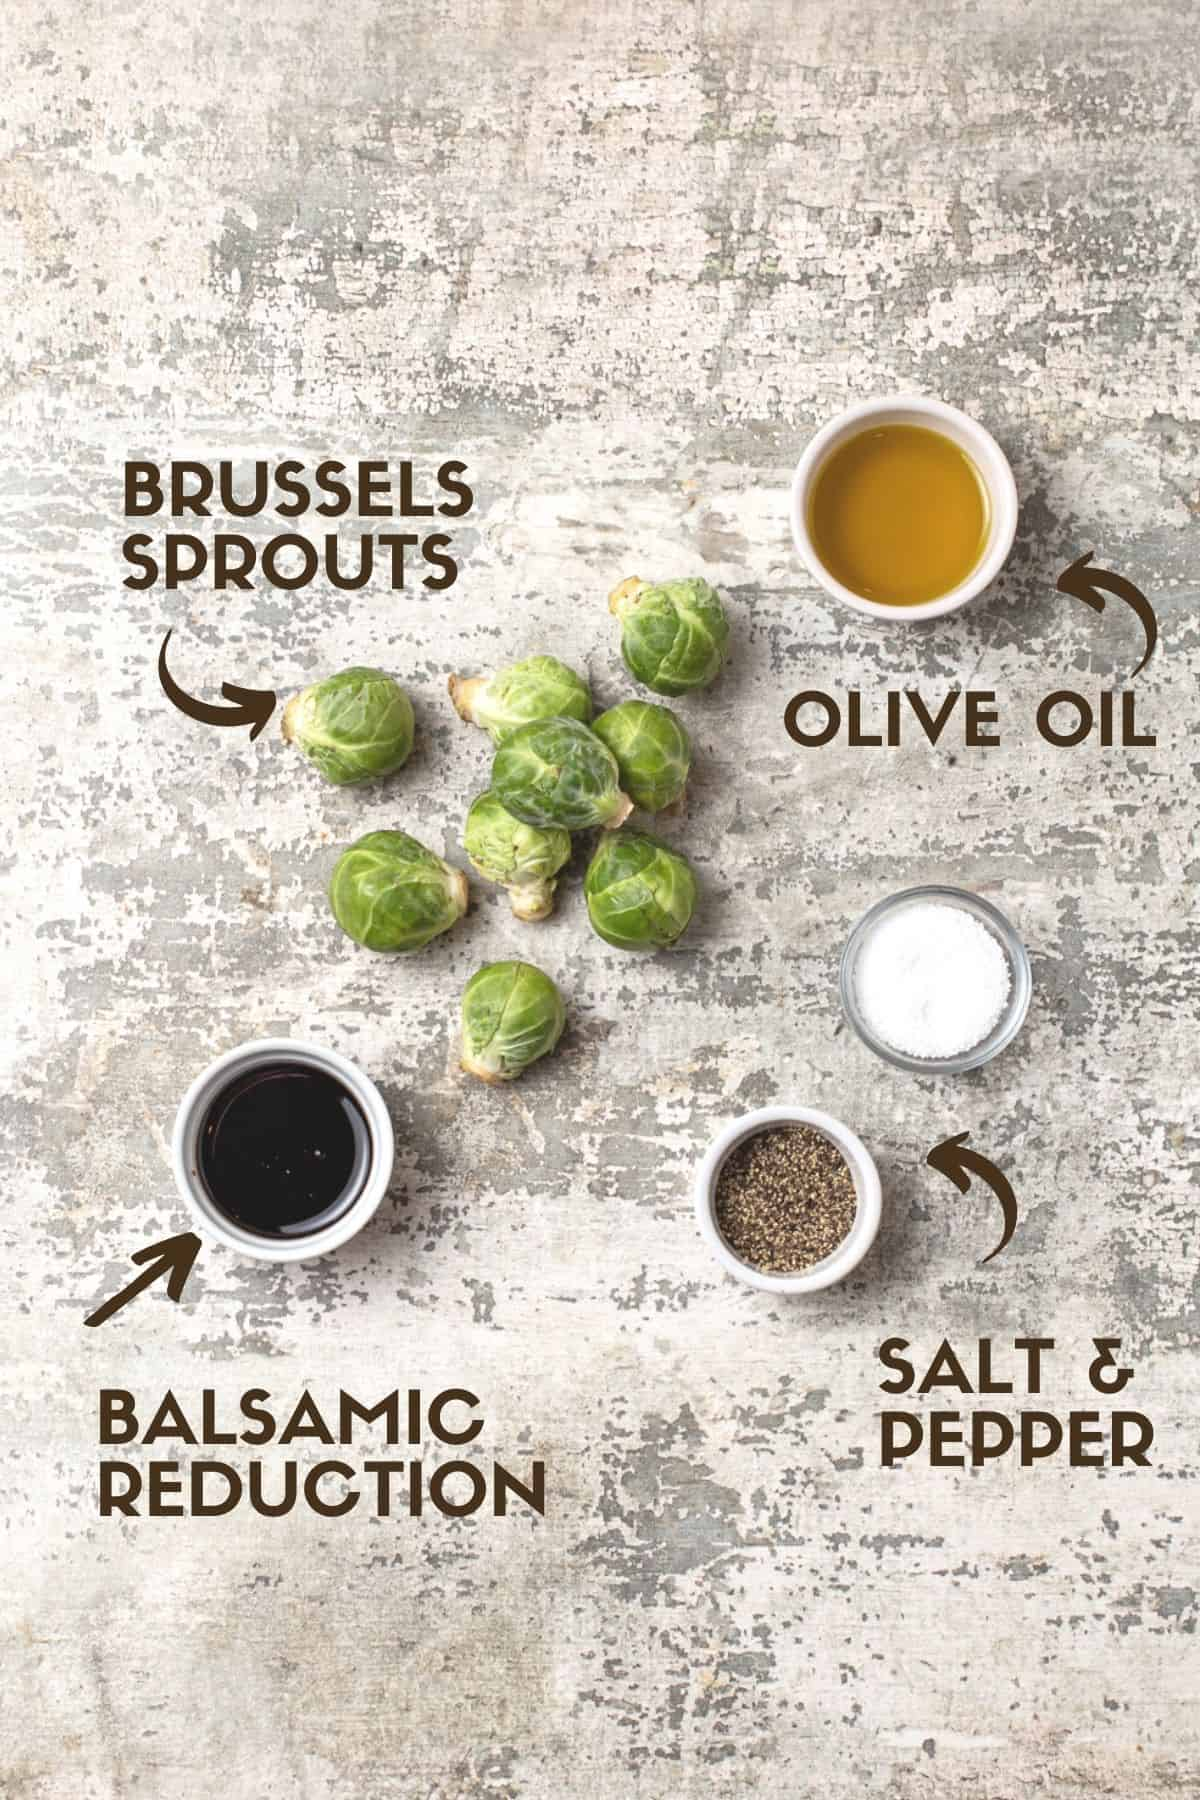 A close up of Brussels sprouts ingredients.